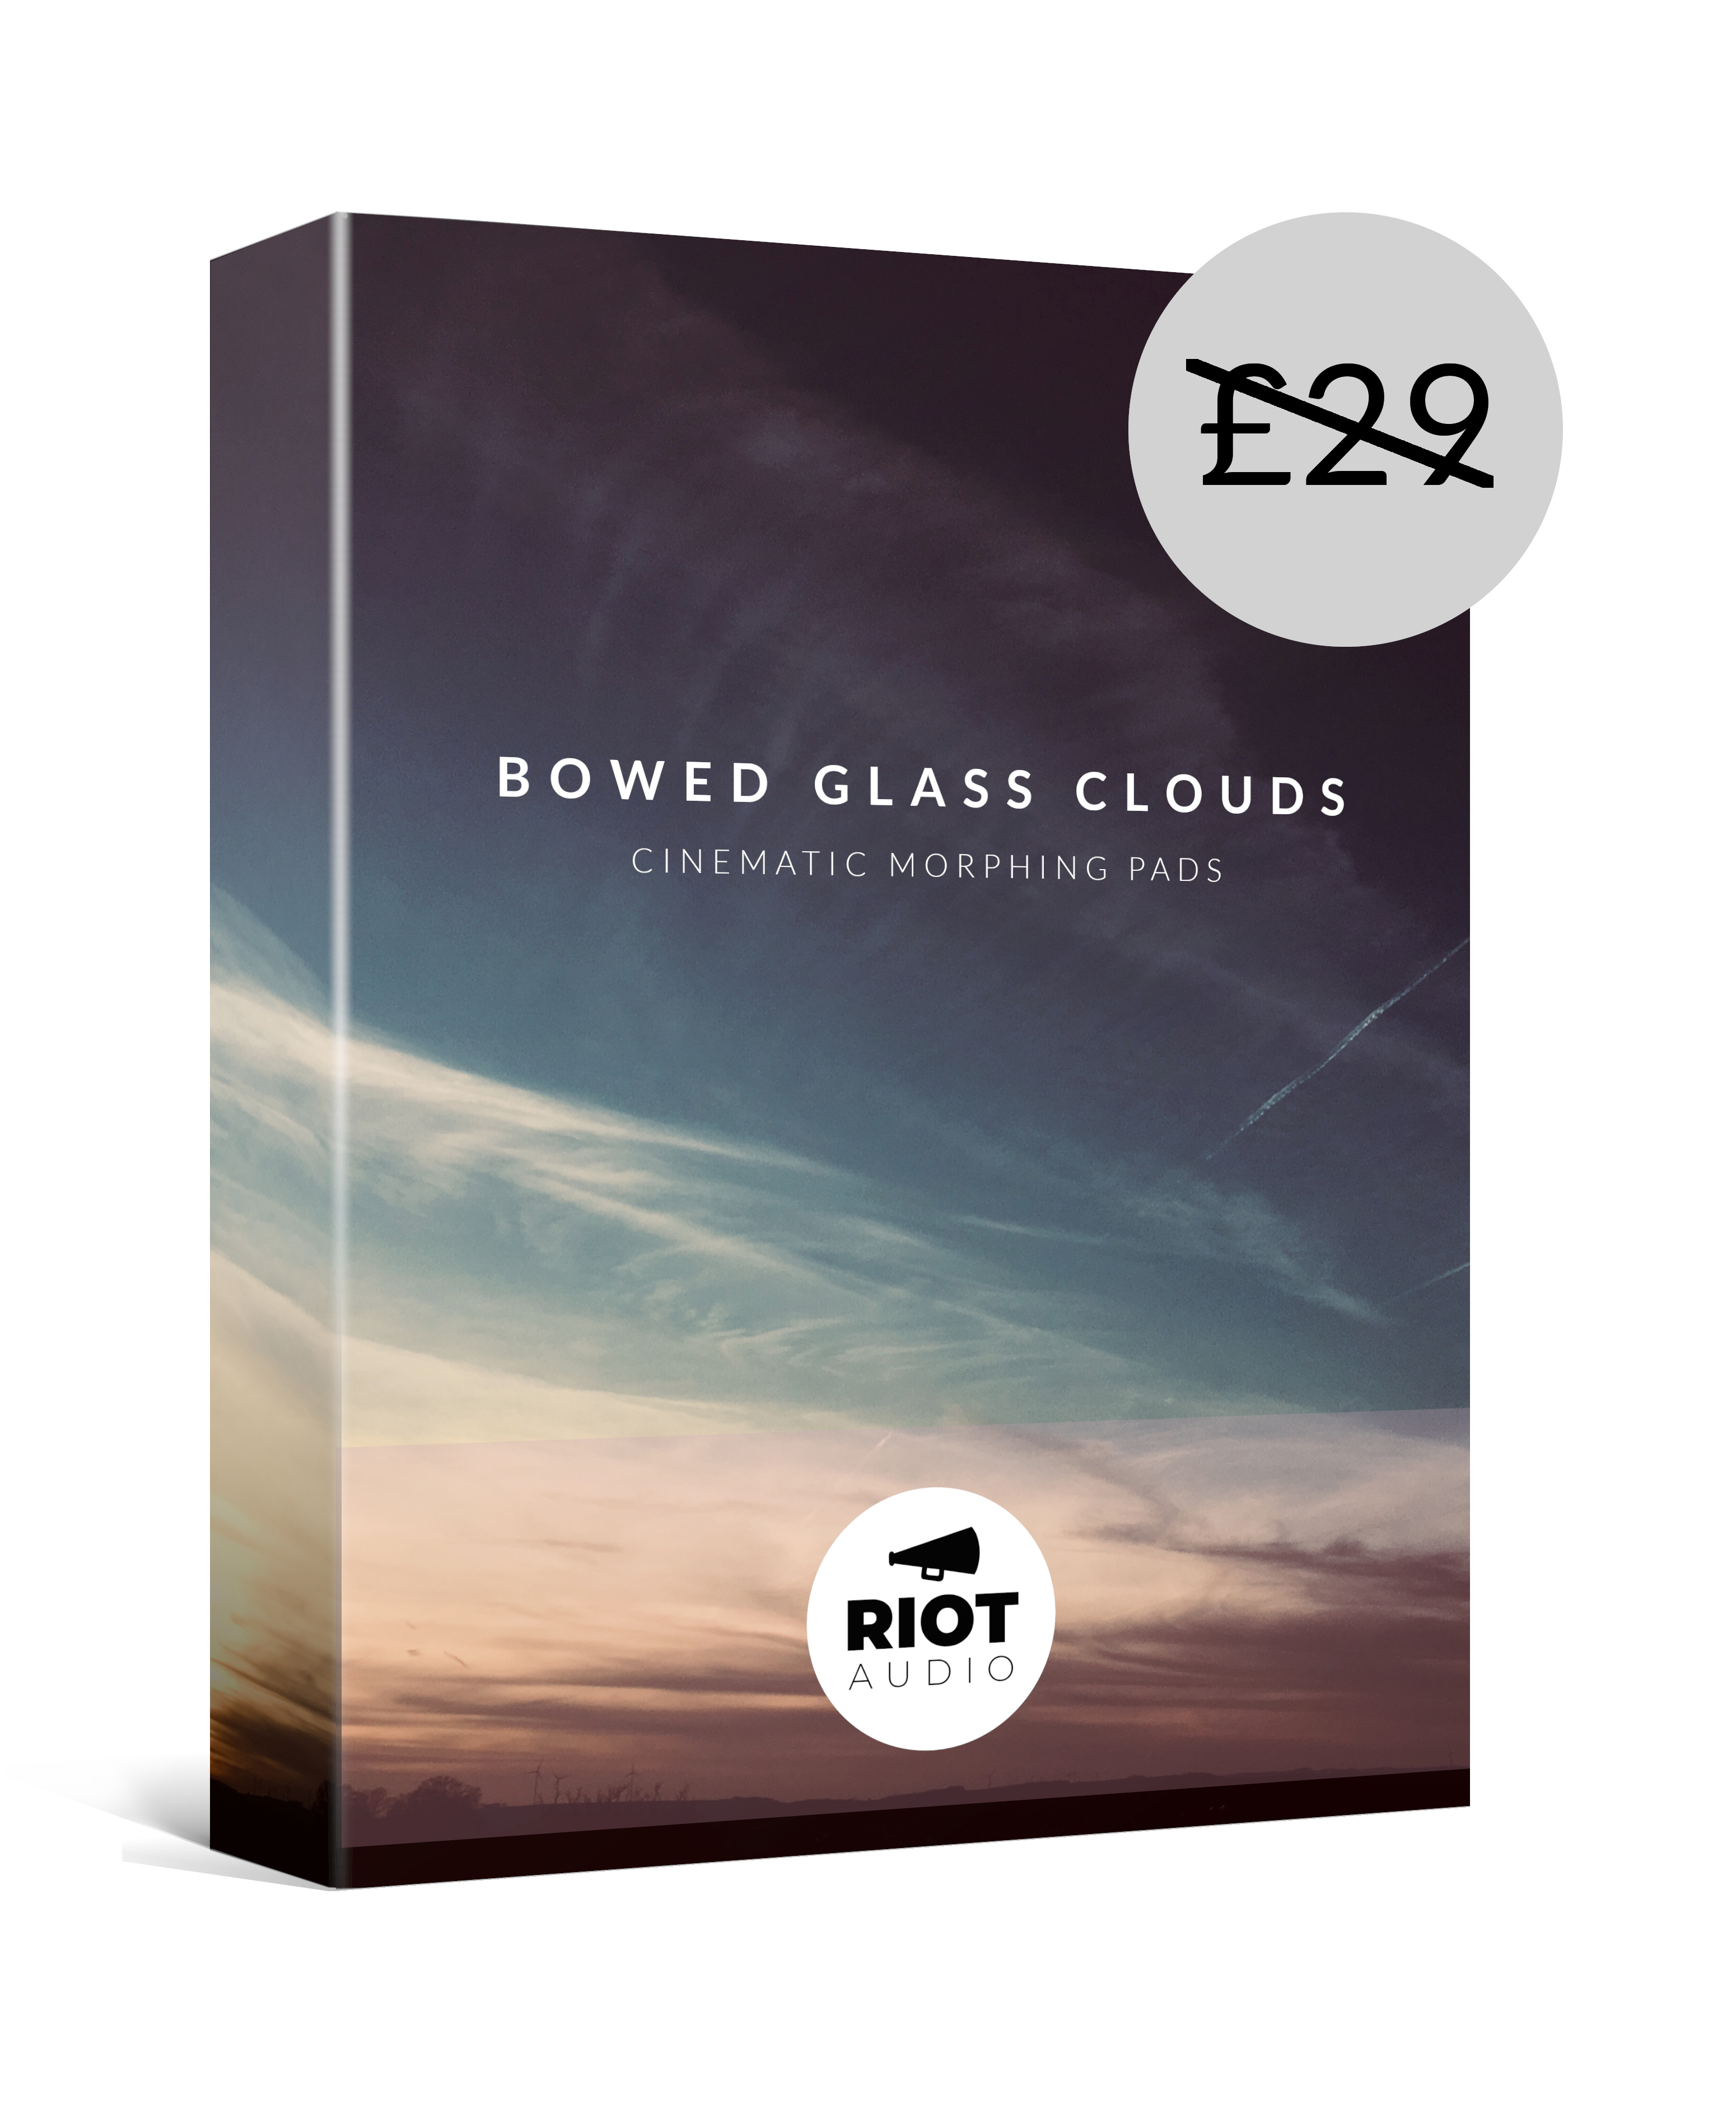 Bowed Glass Clouds | Cinematic Morphing Pads for Kontakt 5 | Free until July 31st